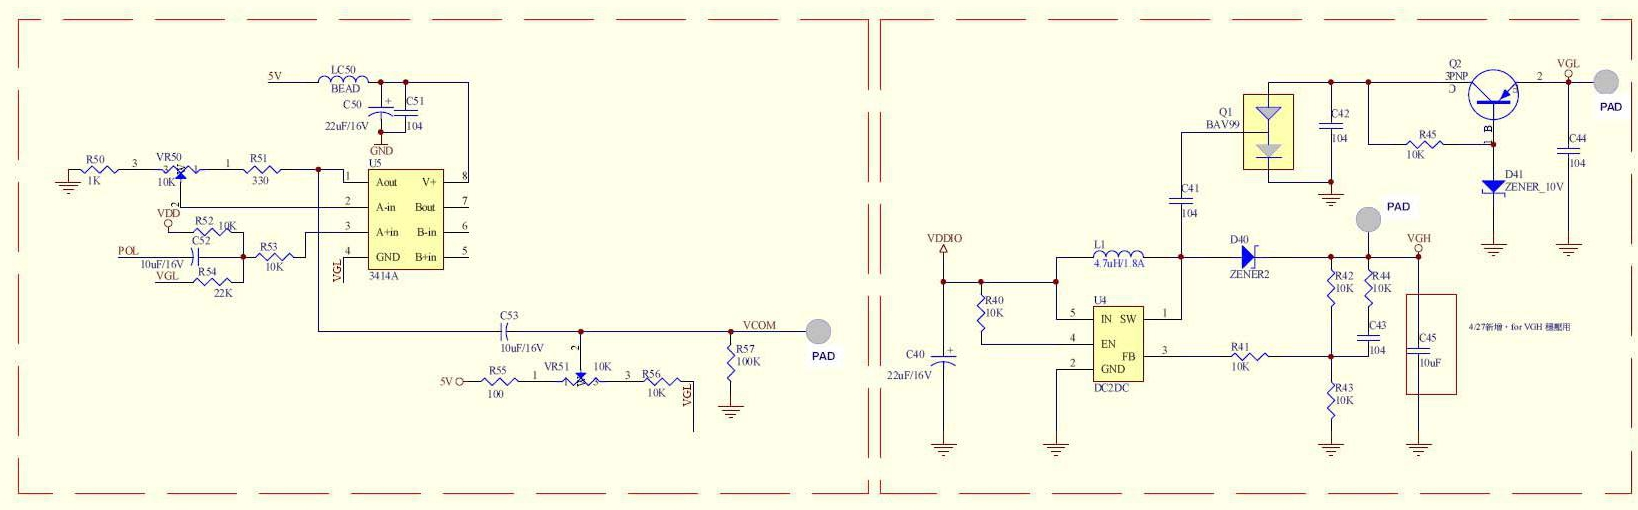 Results Page 68 About High Voltage Generator Searching Circuits Buzzer Beeper Circuit Caroldoey Led Drivers Lcd Bias